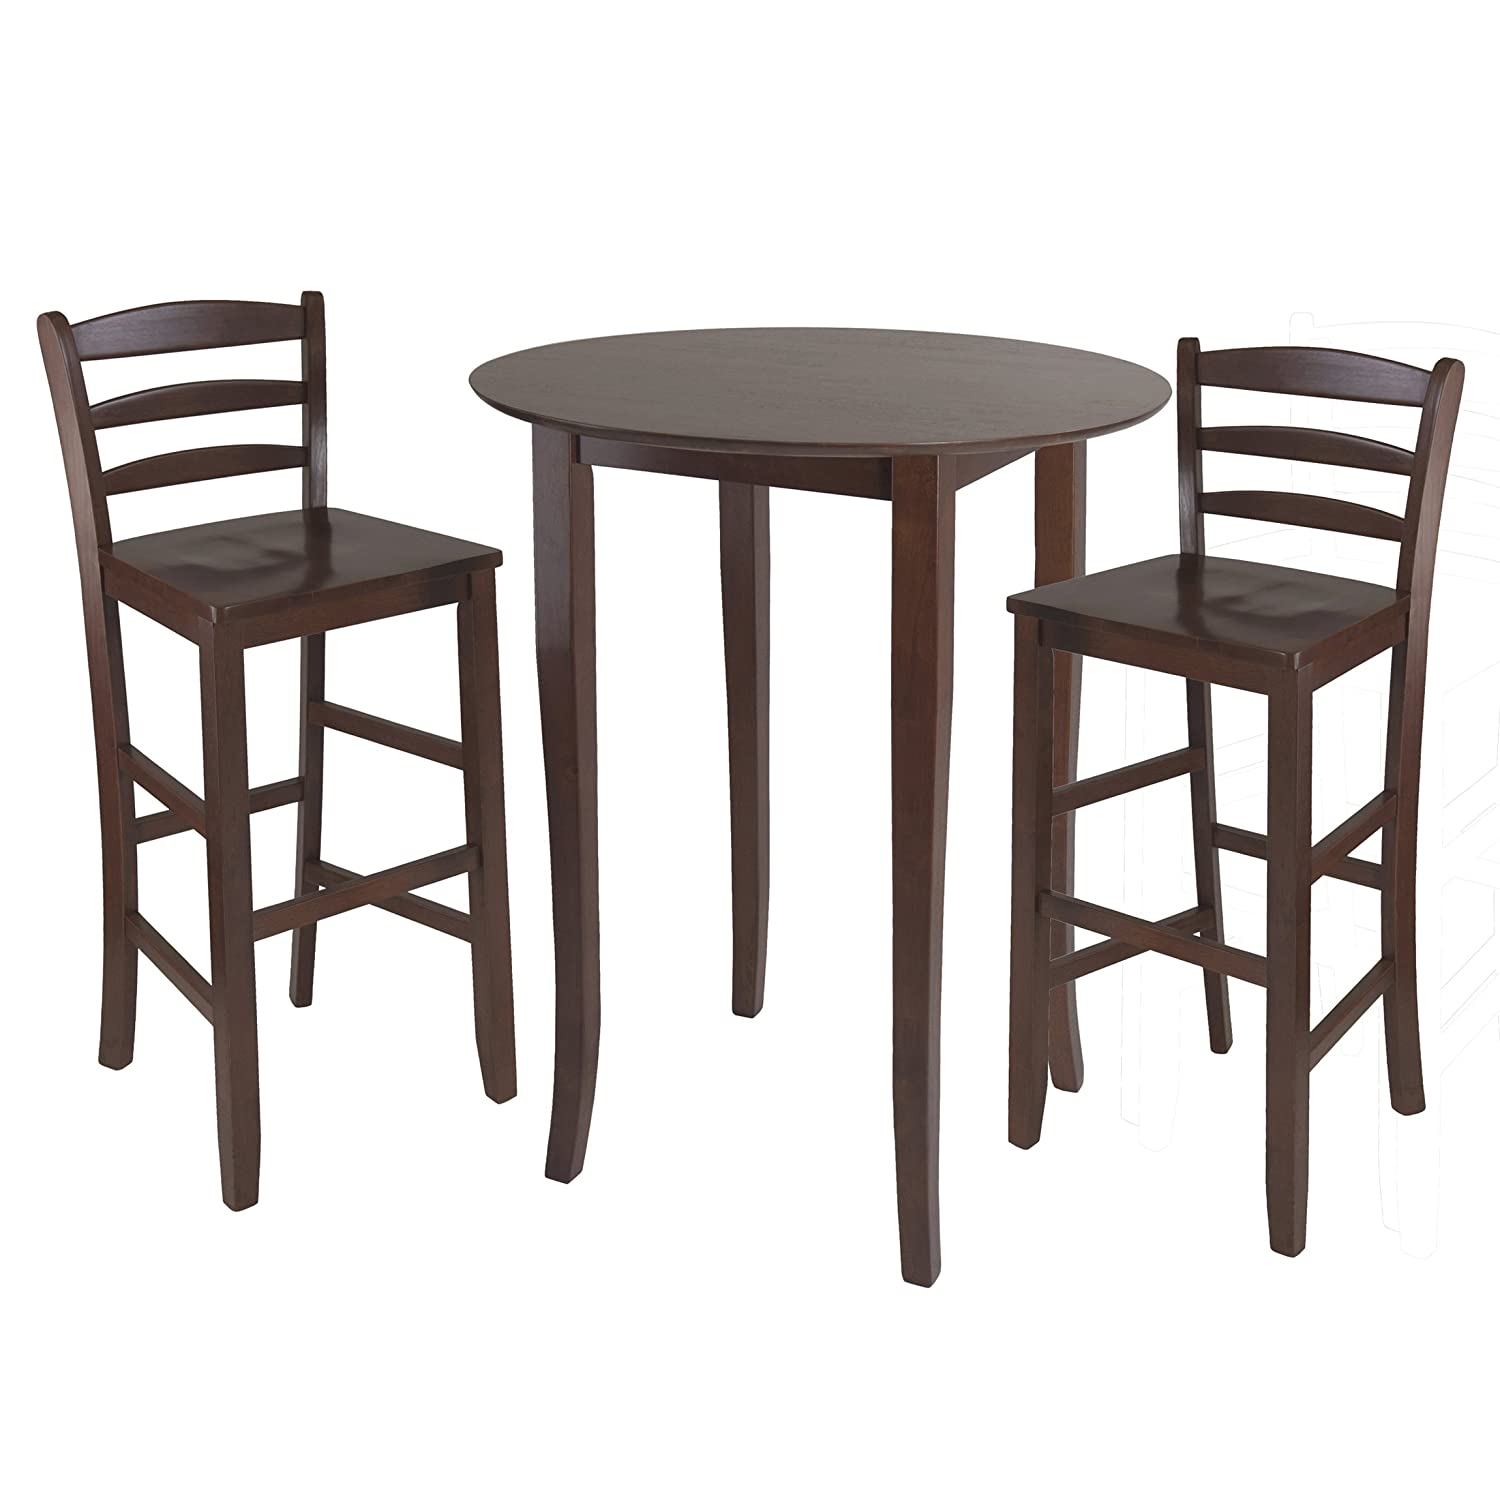 Bar Tables And Chairs Upholstered Kitchen Swivel Bar And Counter Stools With